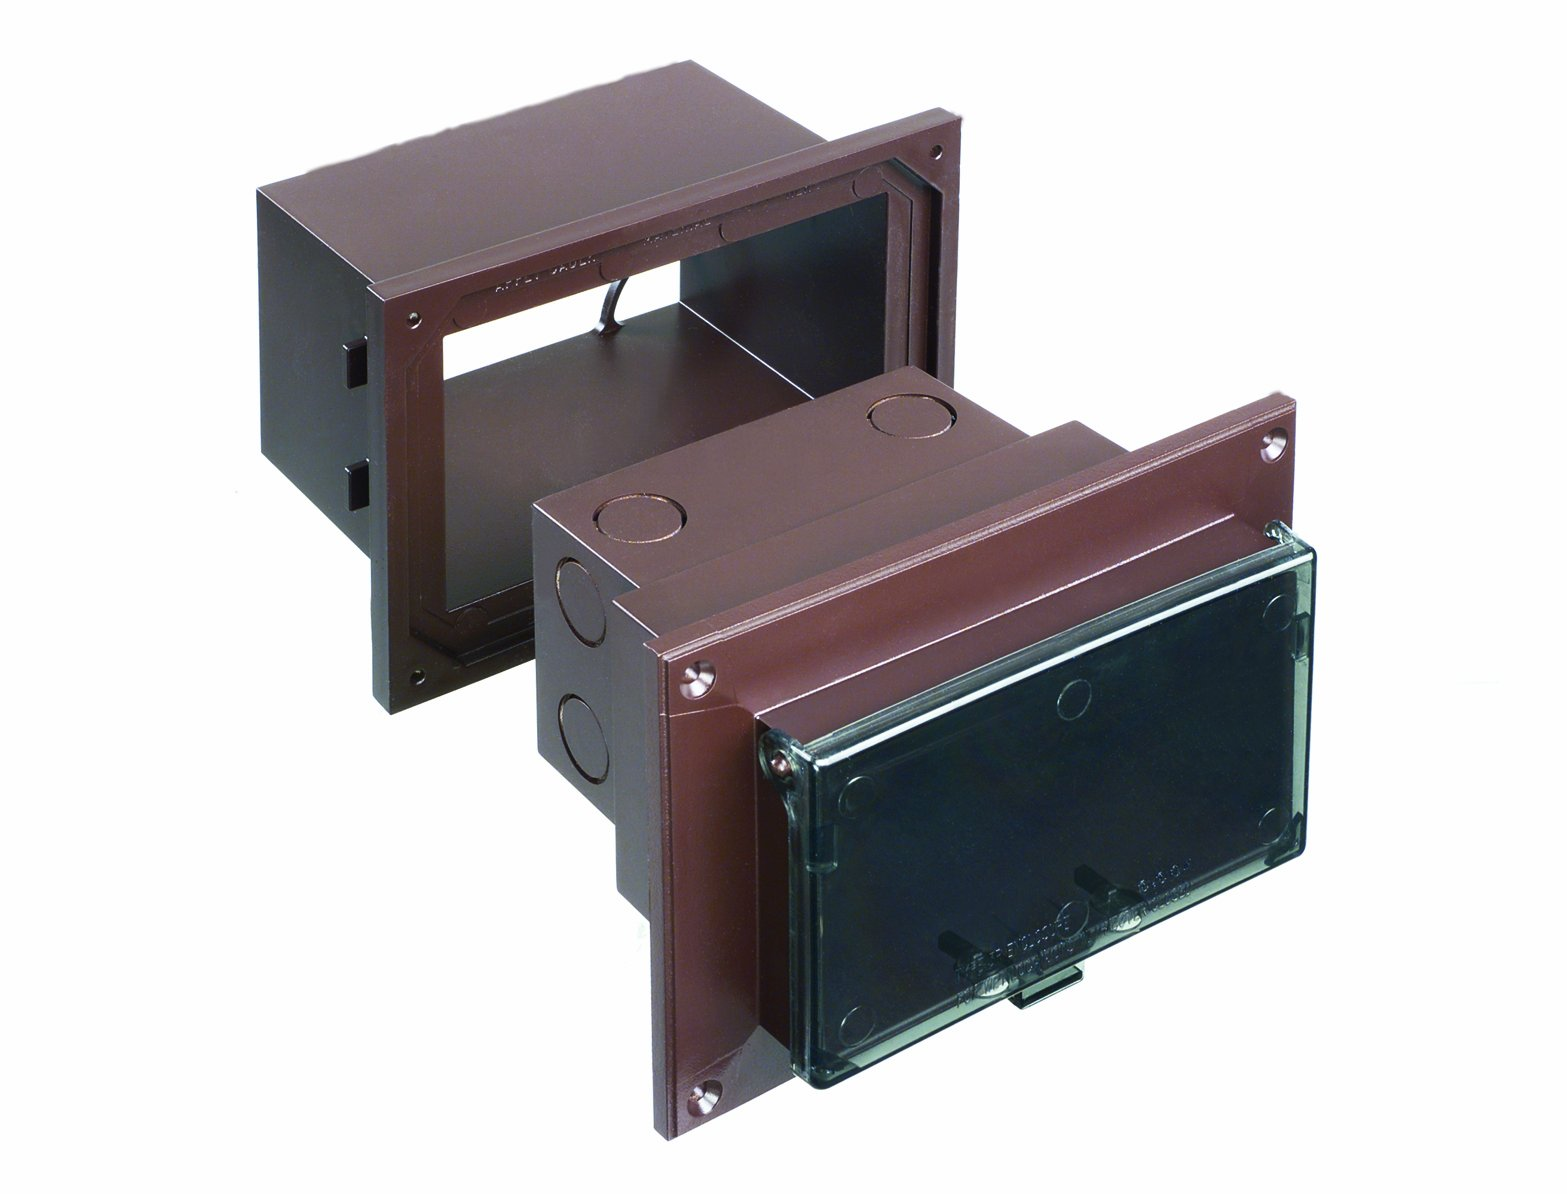 Arlington DHB1BRC-1 Low Profile IN BOX Electrical Box with Adapter Sleeve for New Brick Construction, 1-Gang, Horizontal, Clear Cover/Brown Box